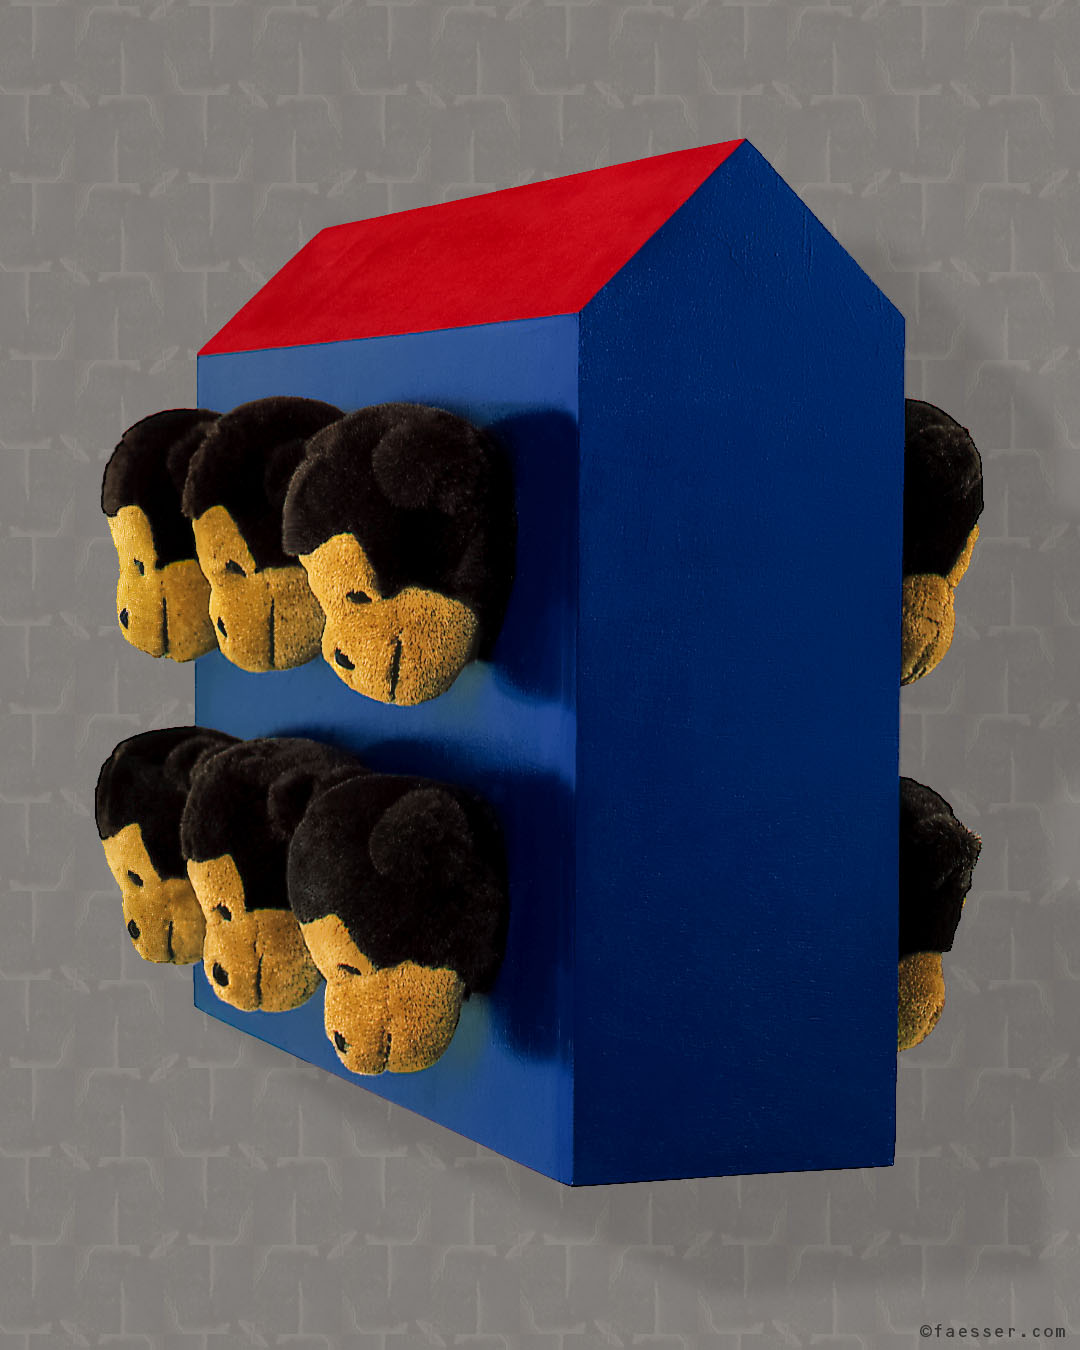 Twelve monkey heads flank the long side of an abstract house; artist Roland Faesser, sculptor and painter 1999